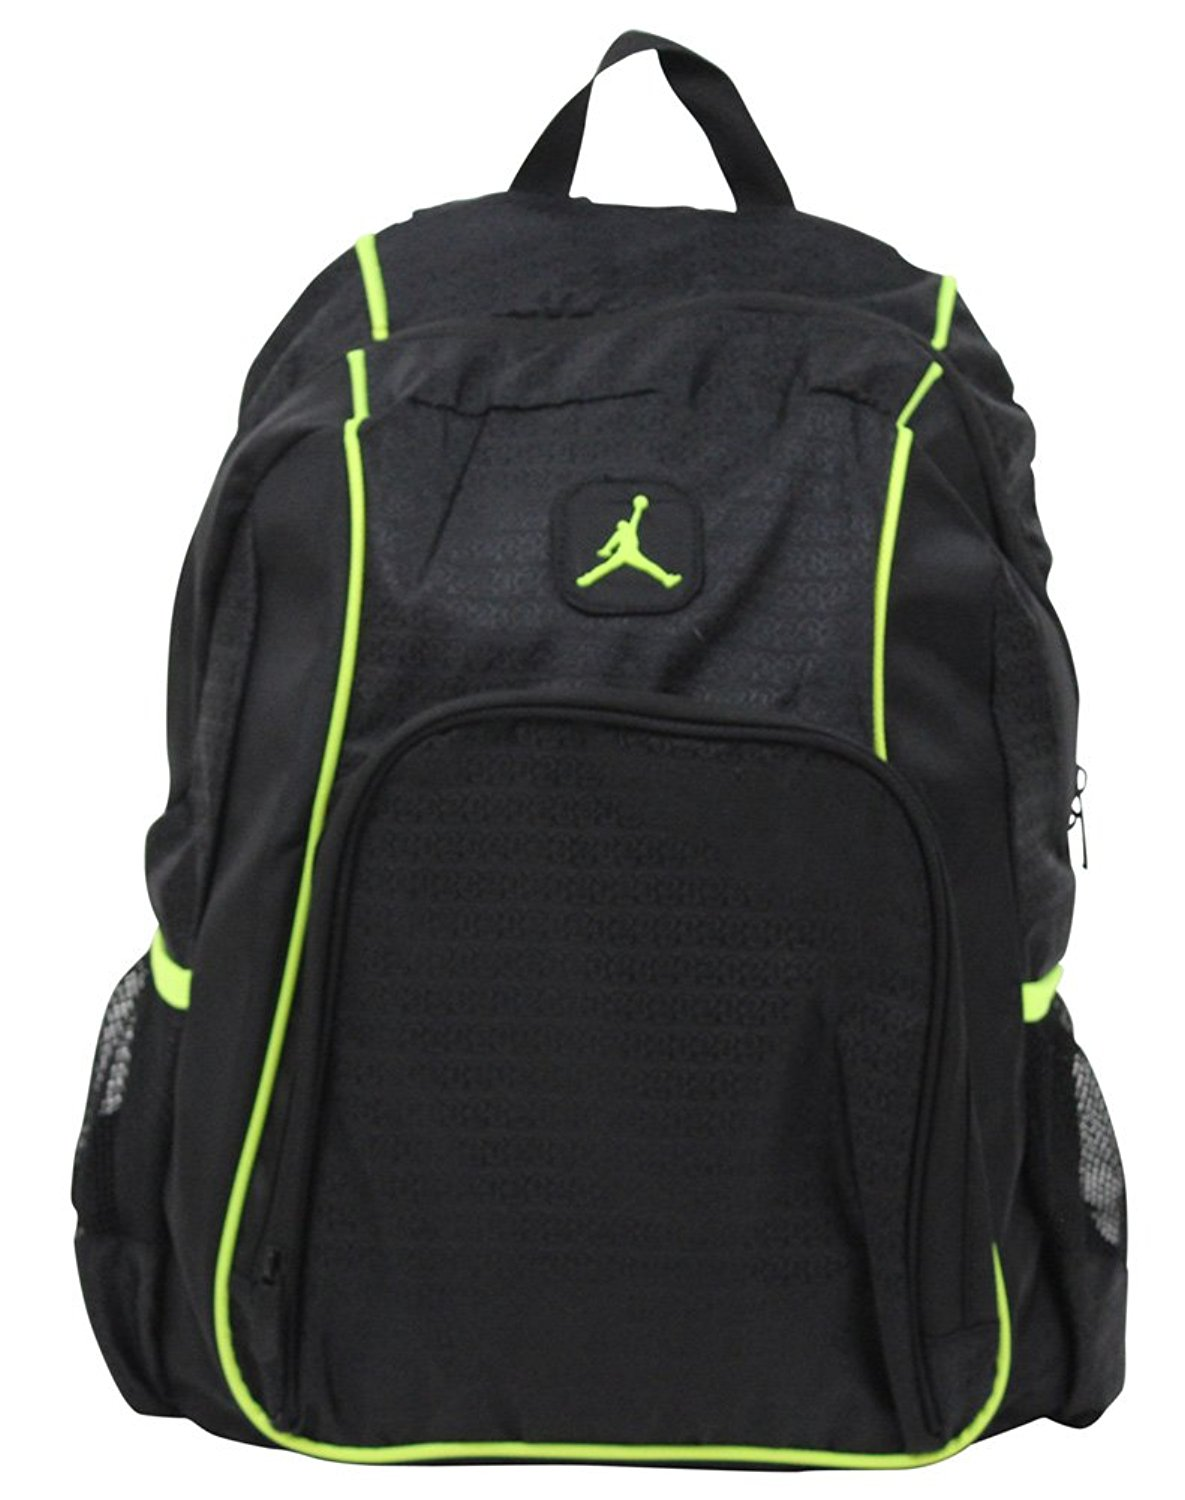 1d34220d48a Get Quotations · Jordan Air Nike Legacy Men's Tablet Laptop Backpack Bag